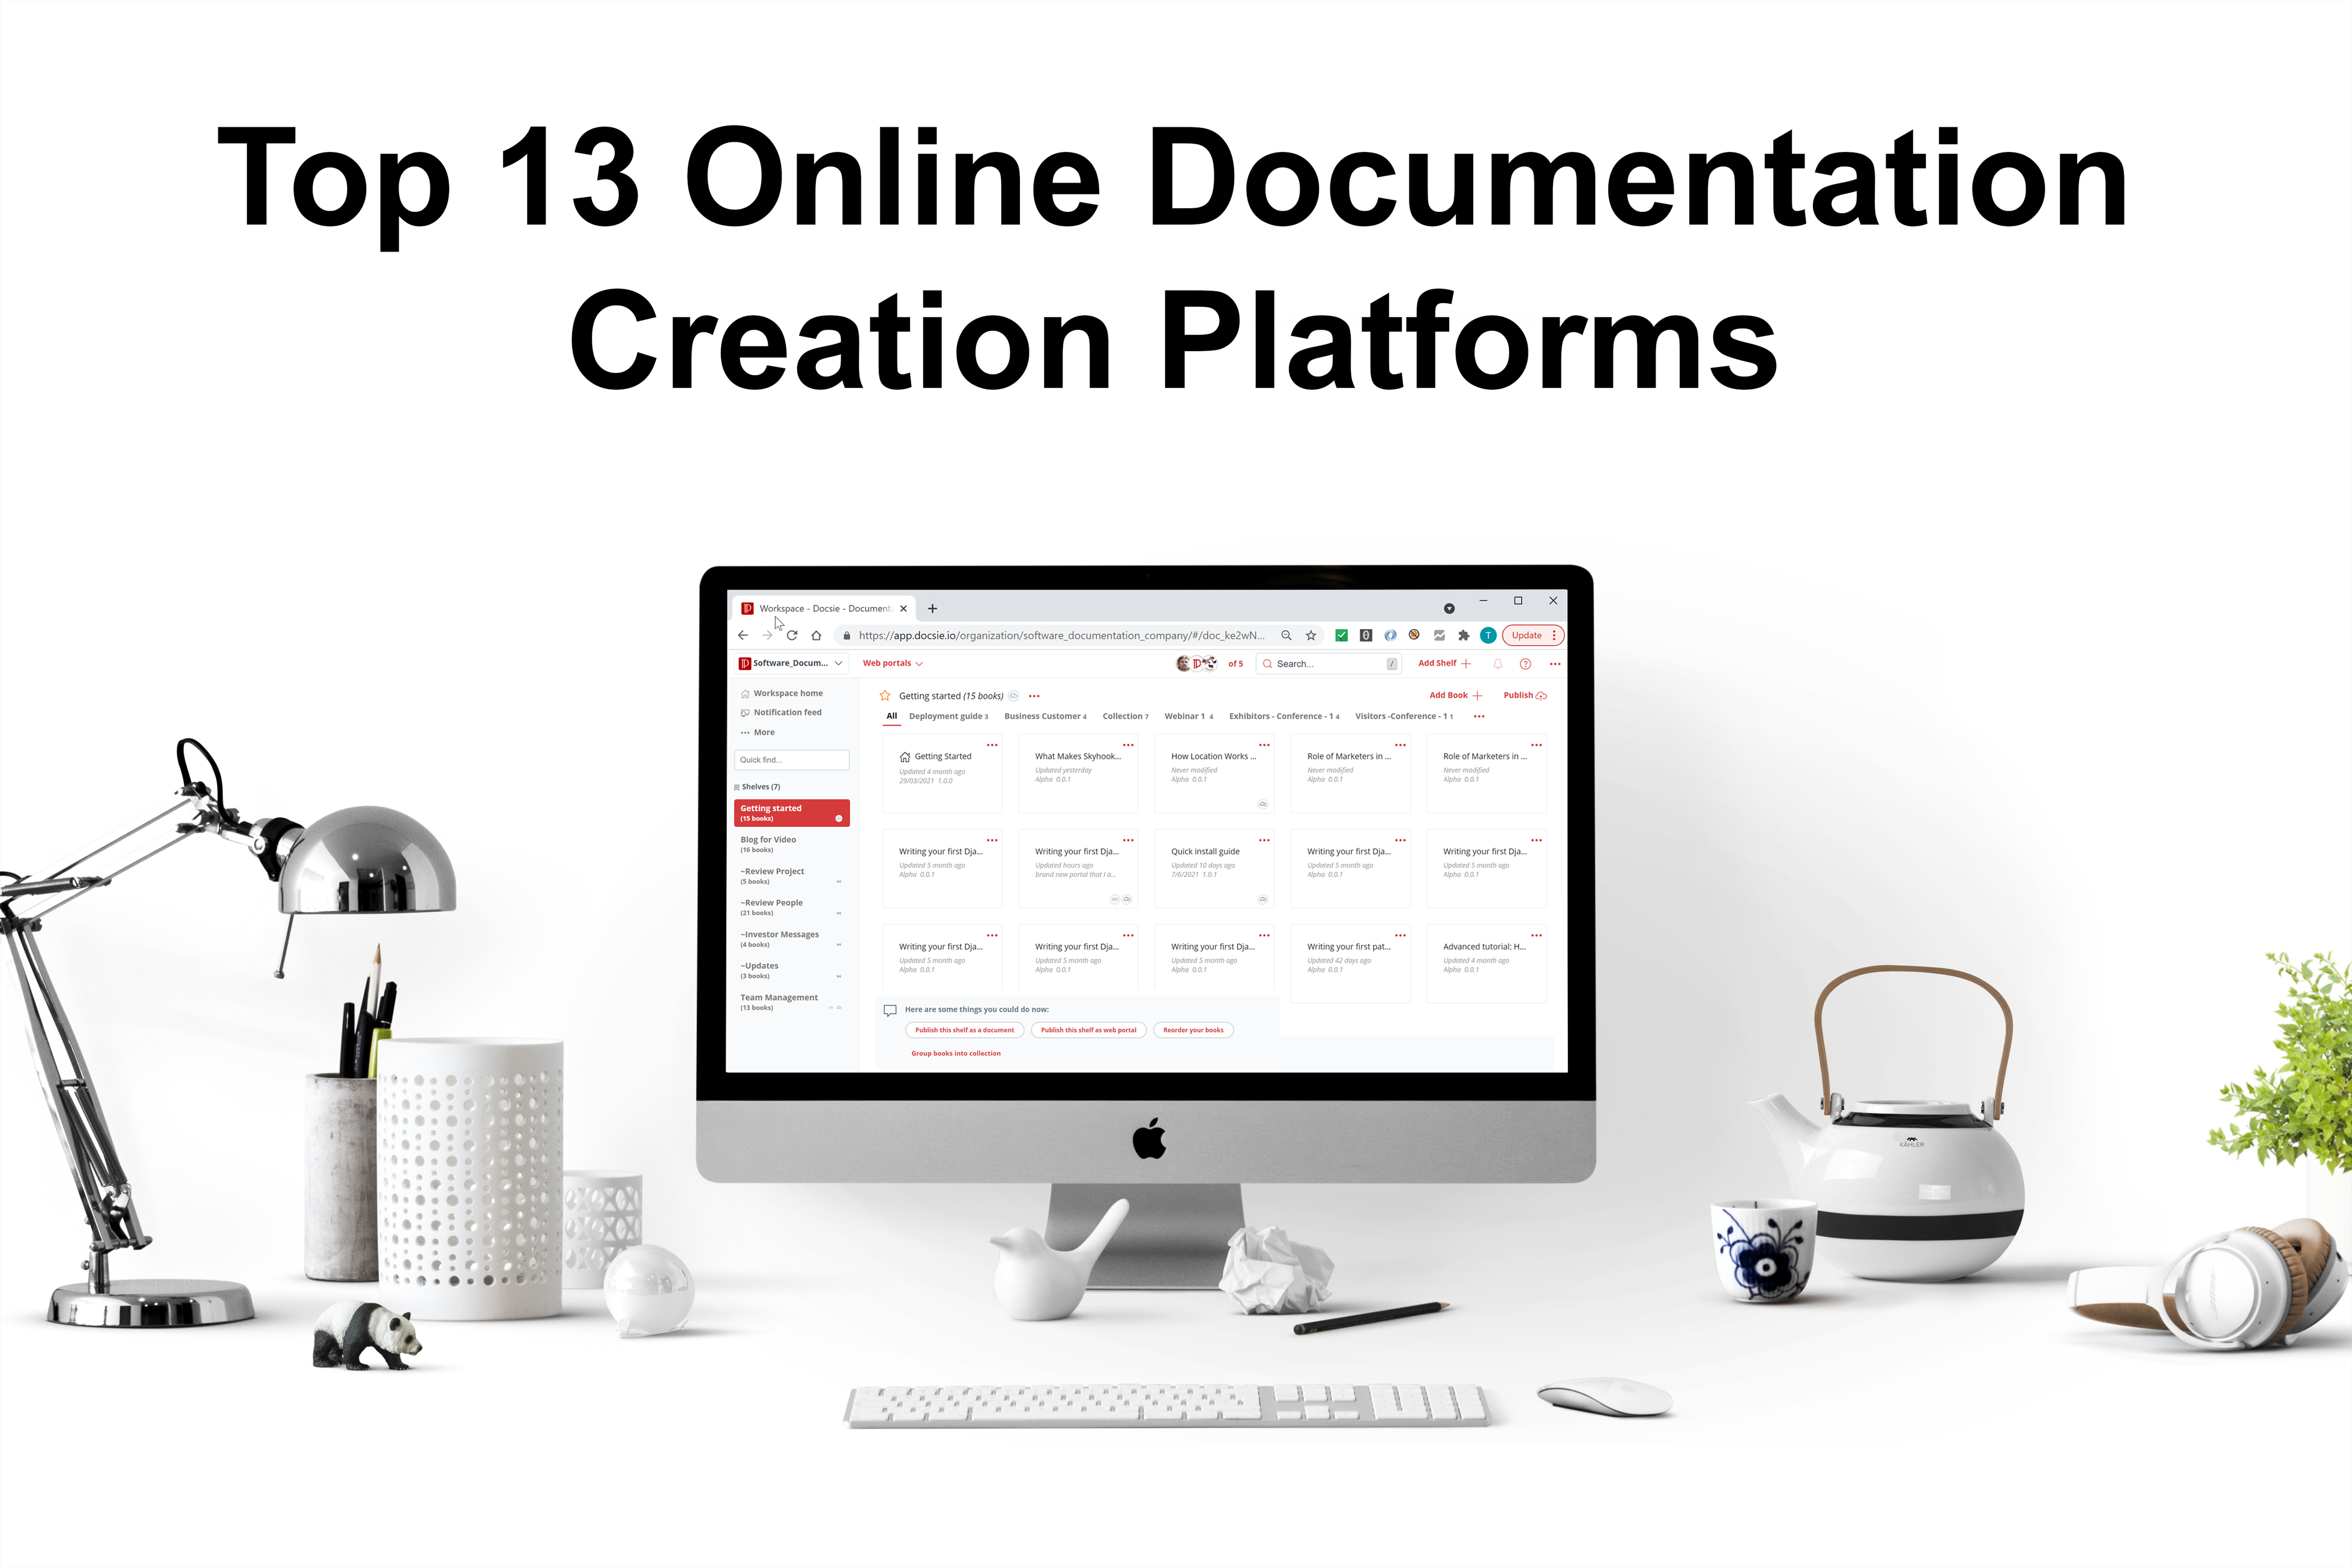 We have explored the greatest features, price plans, and support policies for 13 of the top documentation creation platforms.